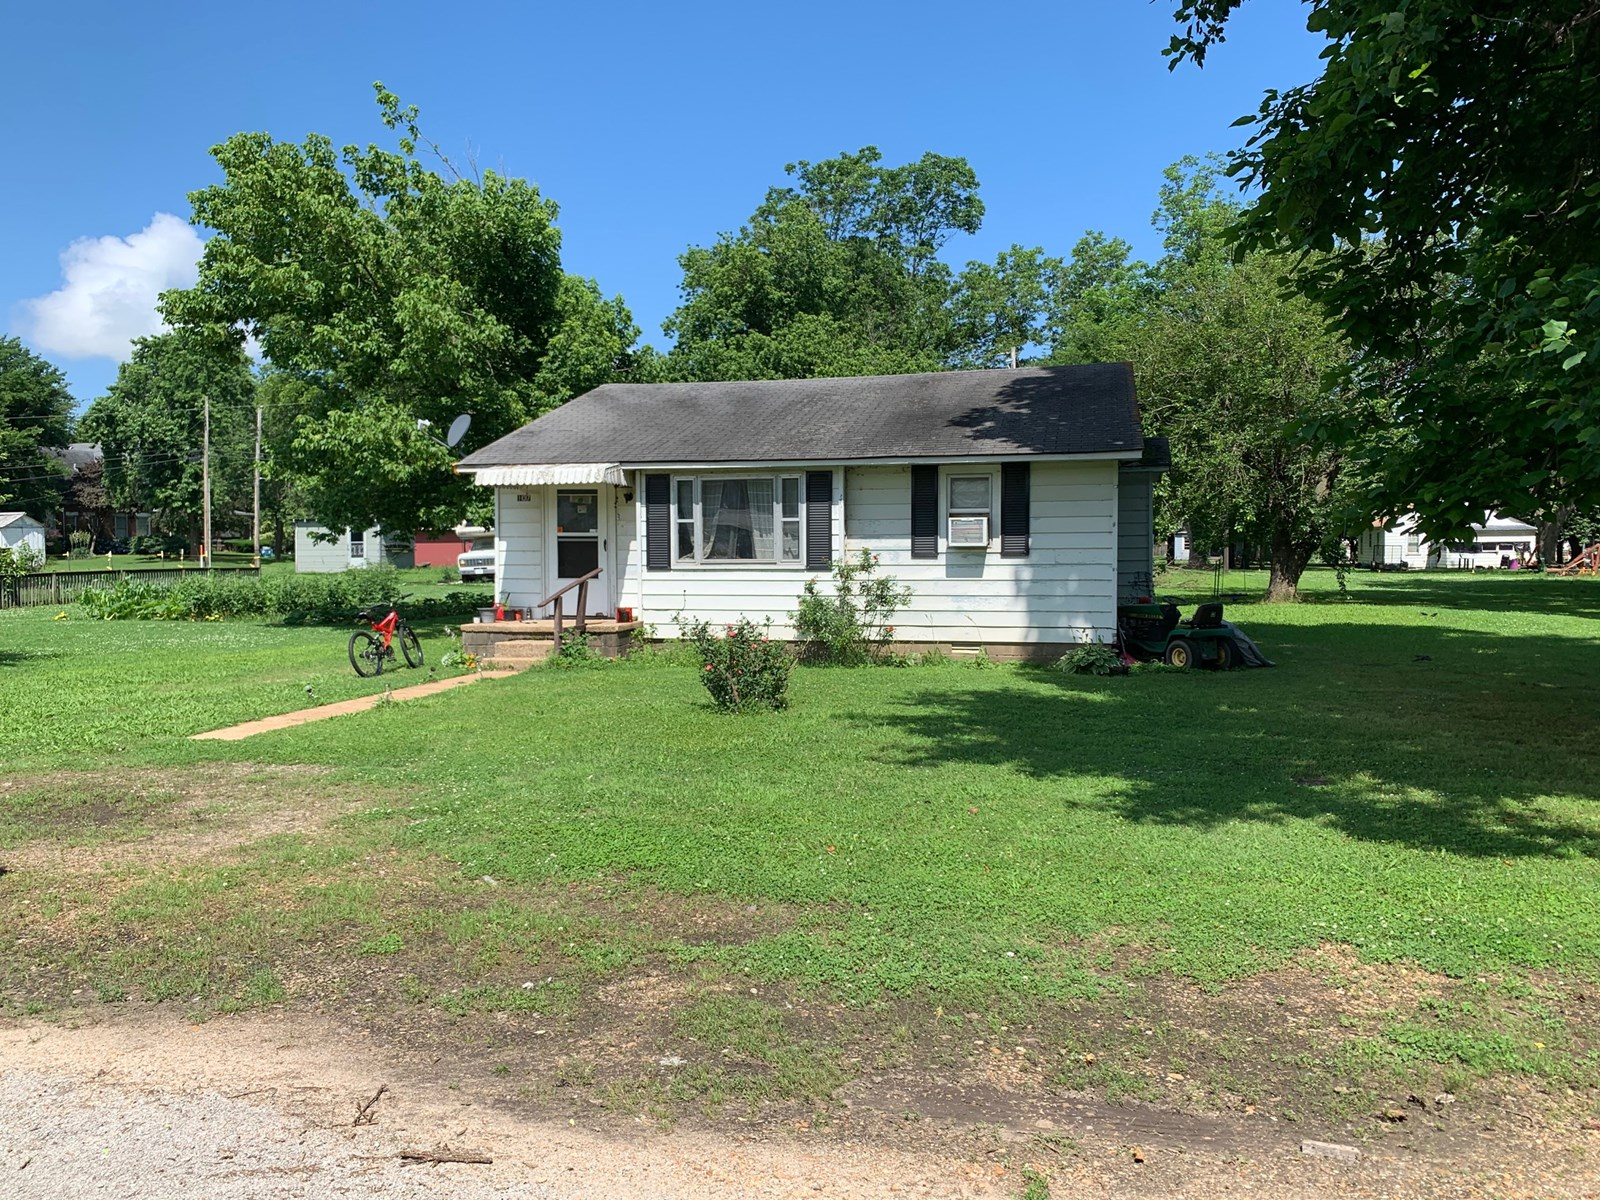 Home in town for sale, Fixer-Upper in Corning, Arkansas